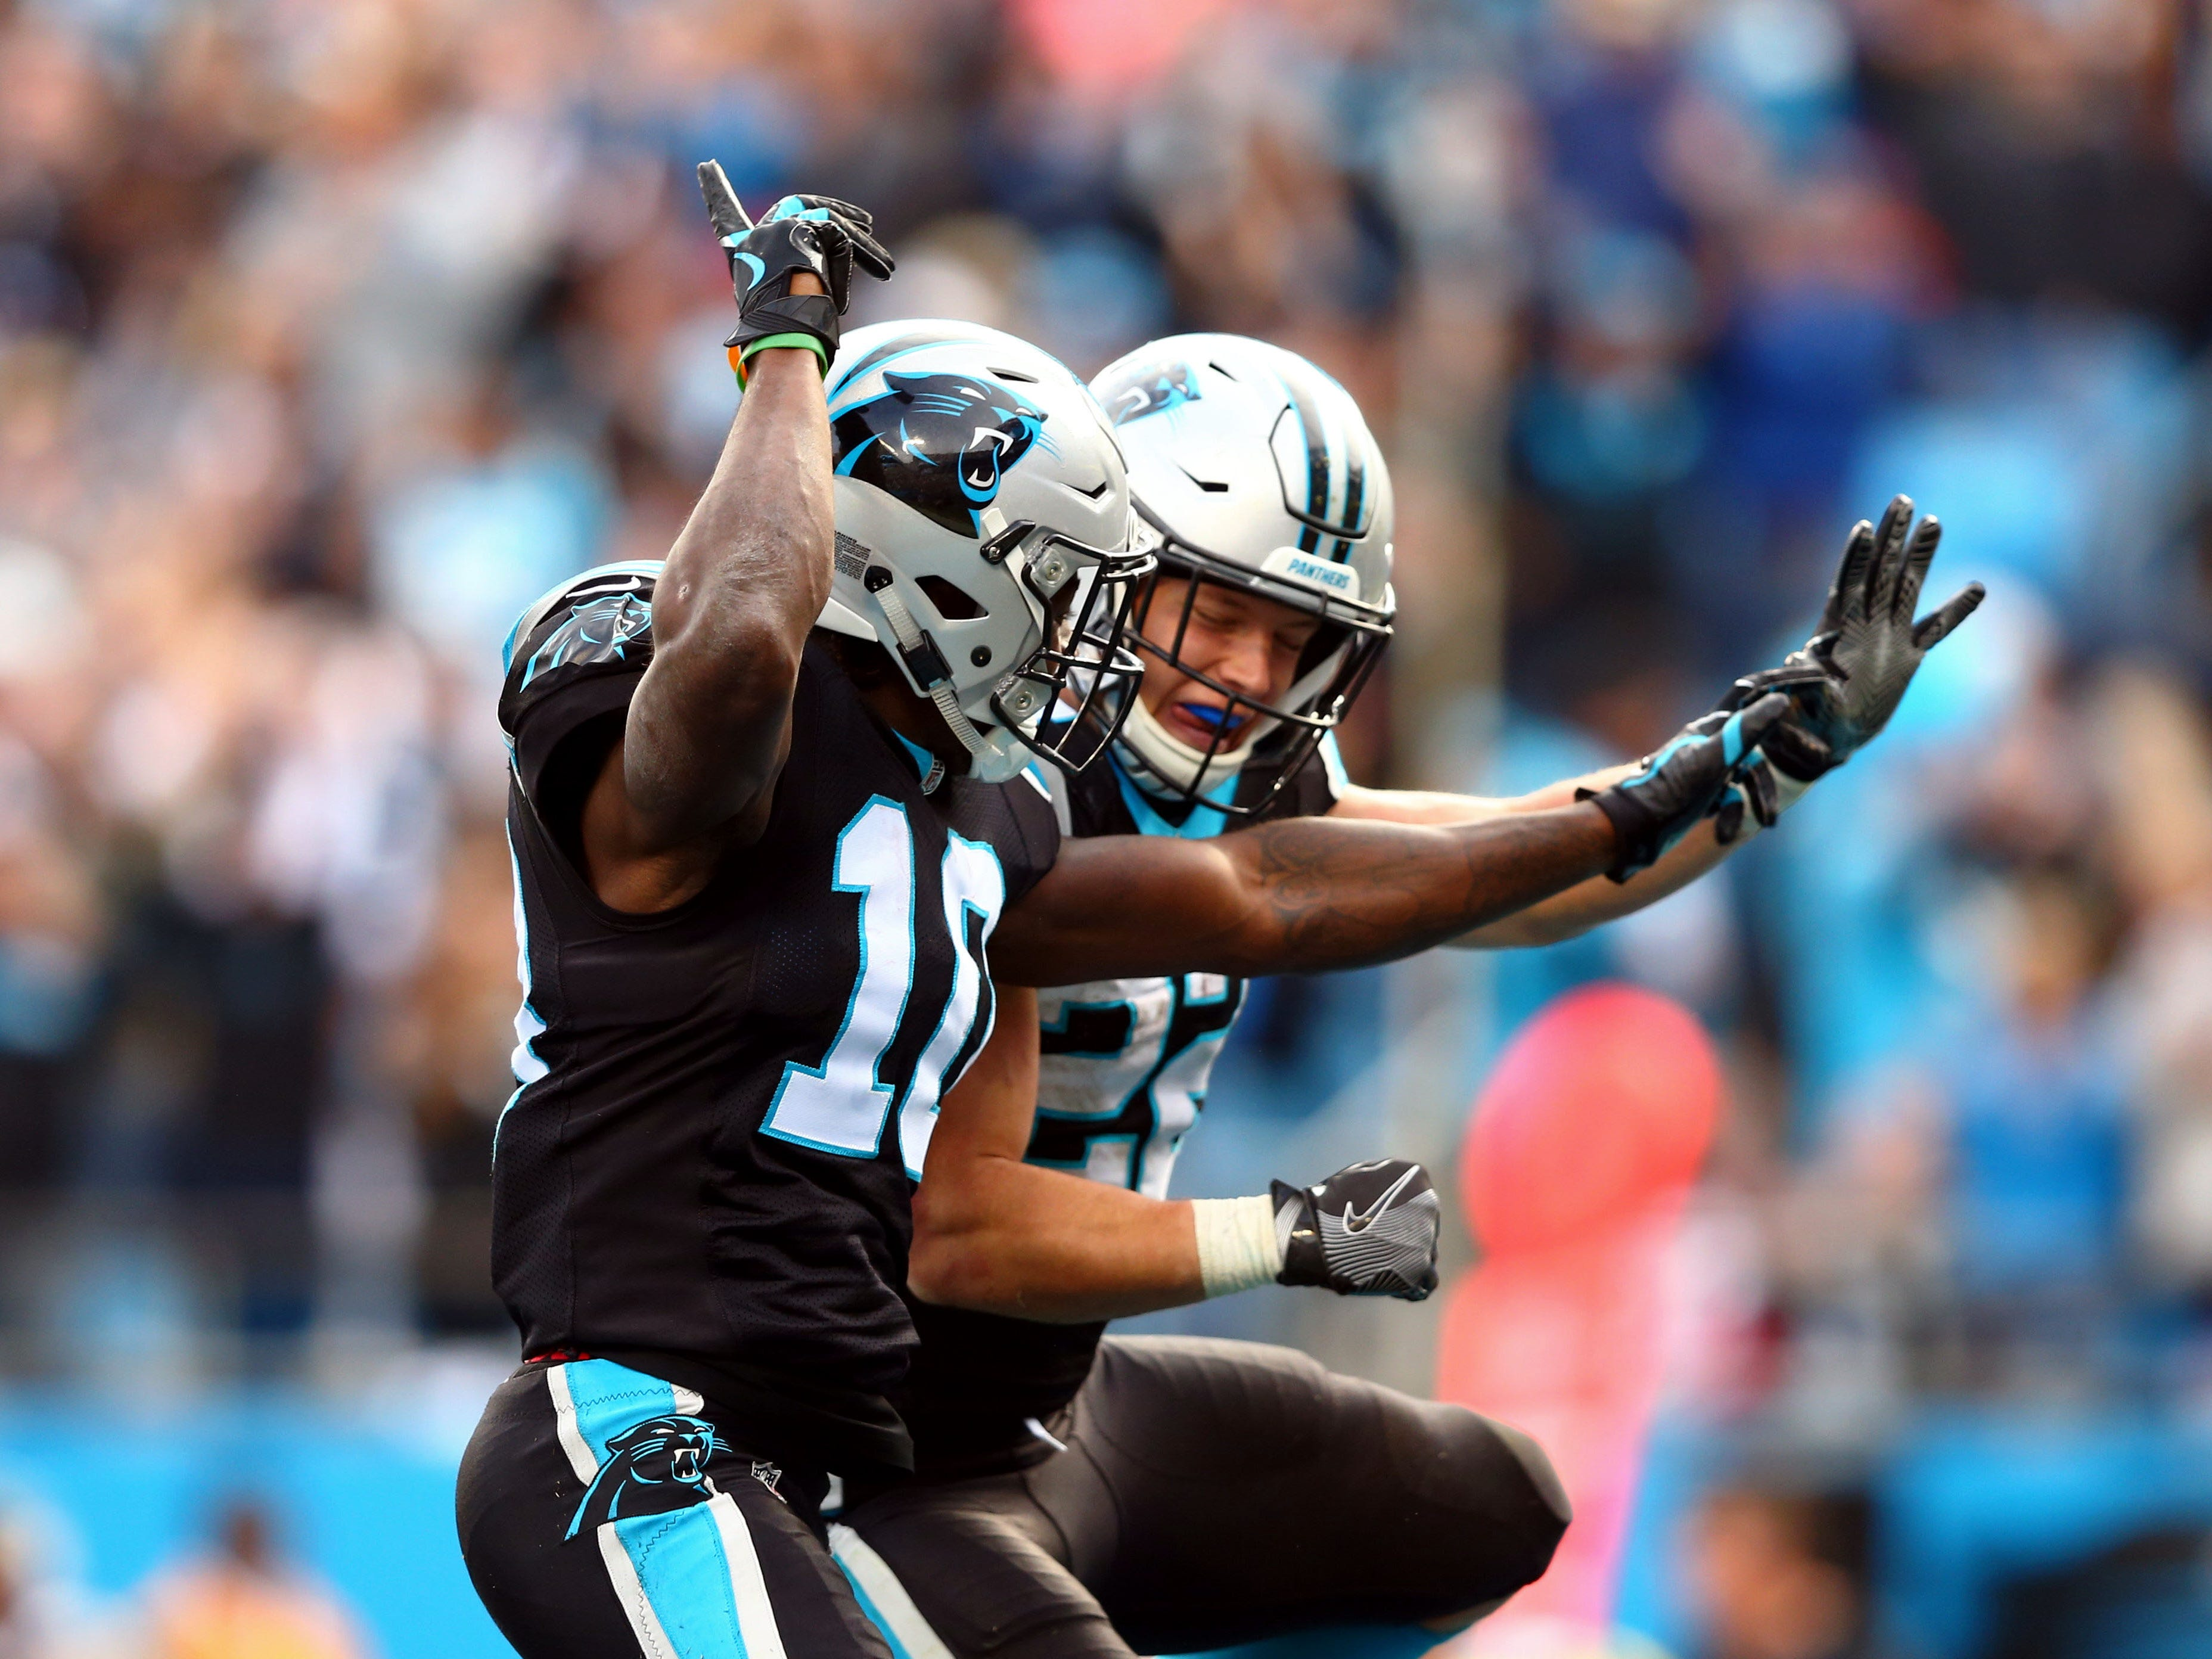 5. Panthers (6-2) | Last game: Defeated the Buccaneers, 42-28 | Previous ranking: 6